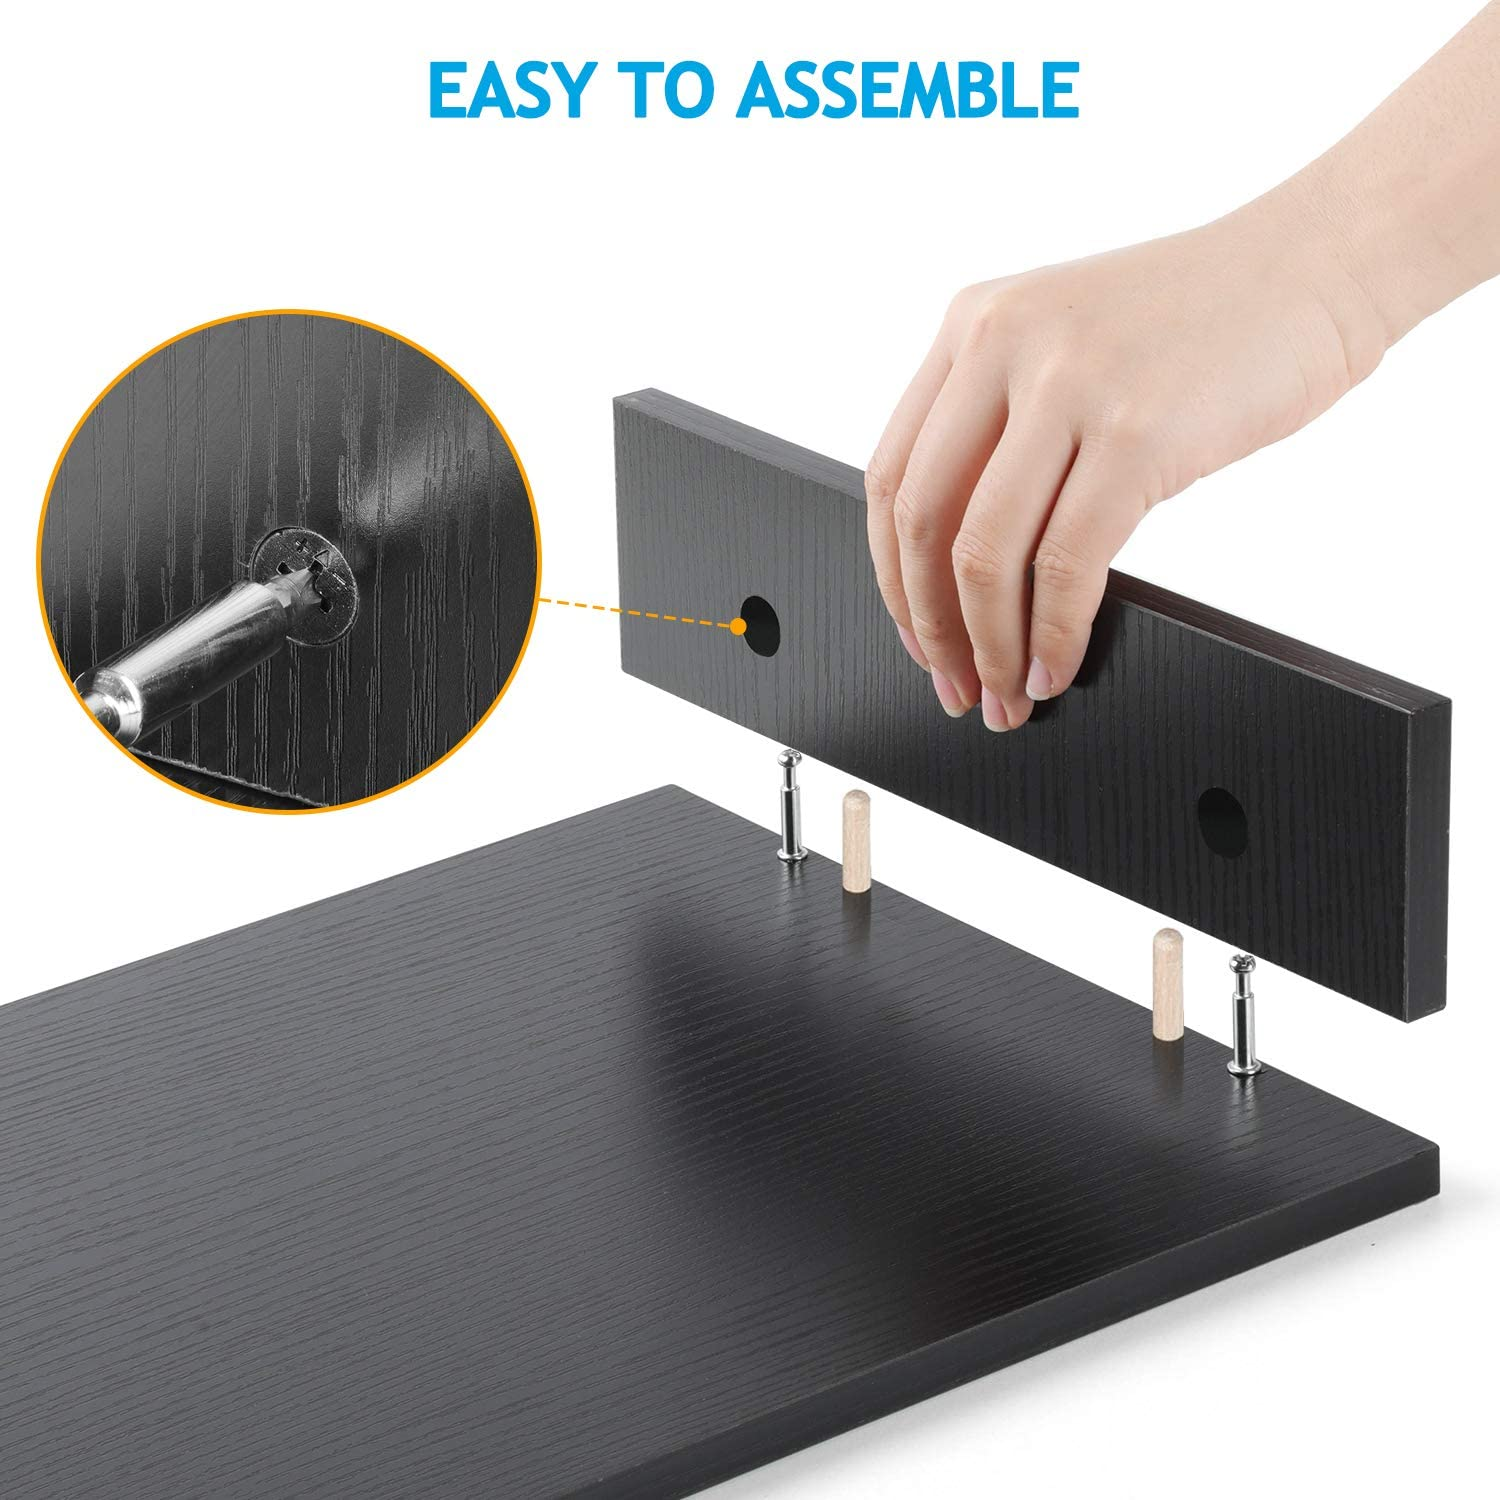 LORYERGO Monitor Stand Riser - Laptop Stand with 2 Tier Storage Shelf, Desktop Storage Organizer for Computer, Laptop, Printer, Perfect as Screen Stand, Desktop Bookshelf for Home & Office : Office Products